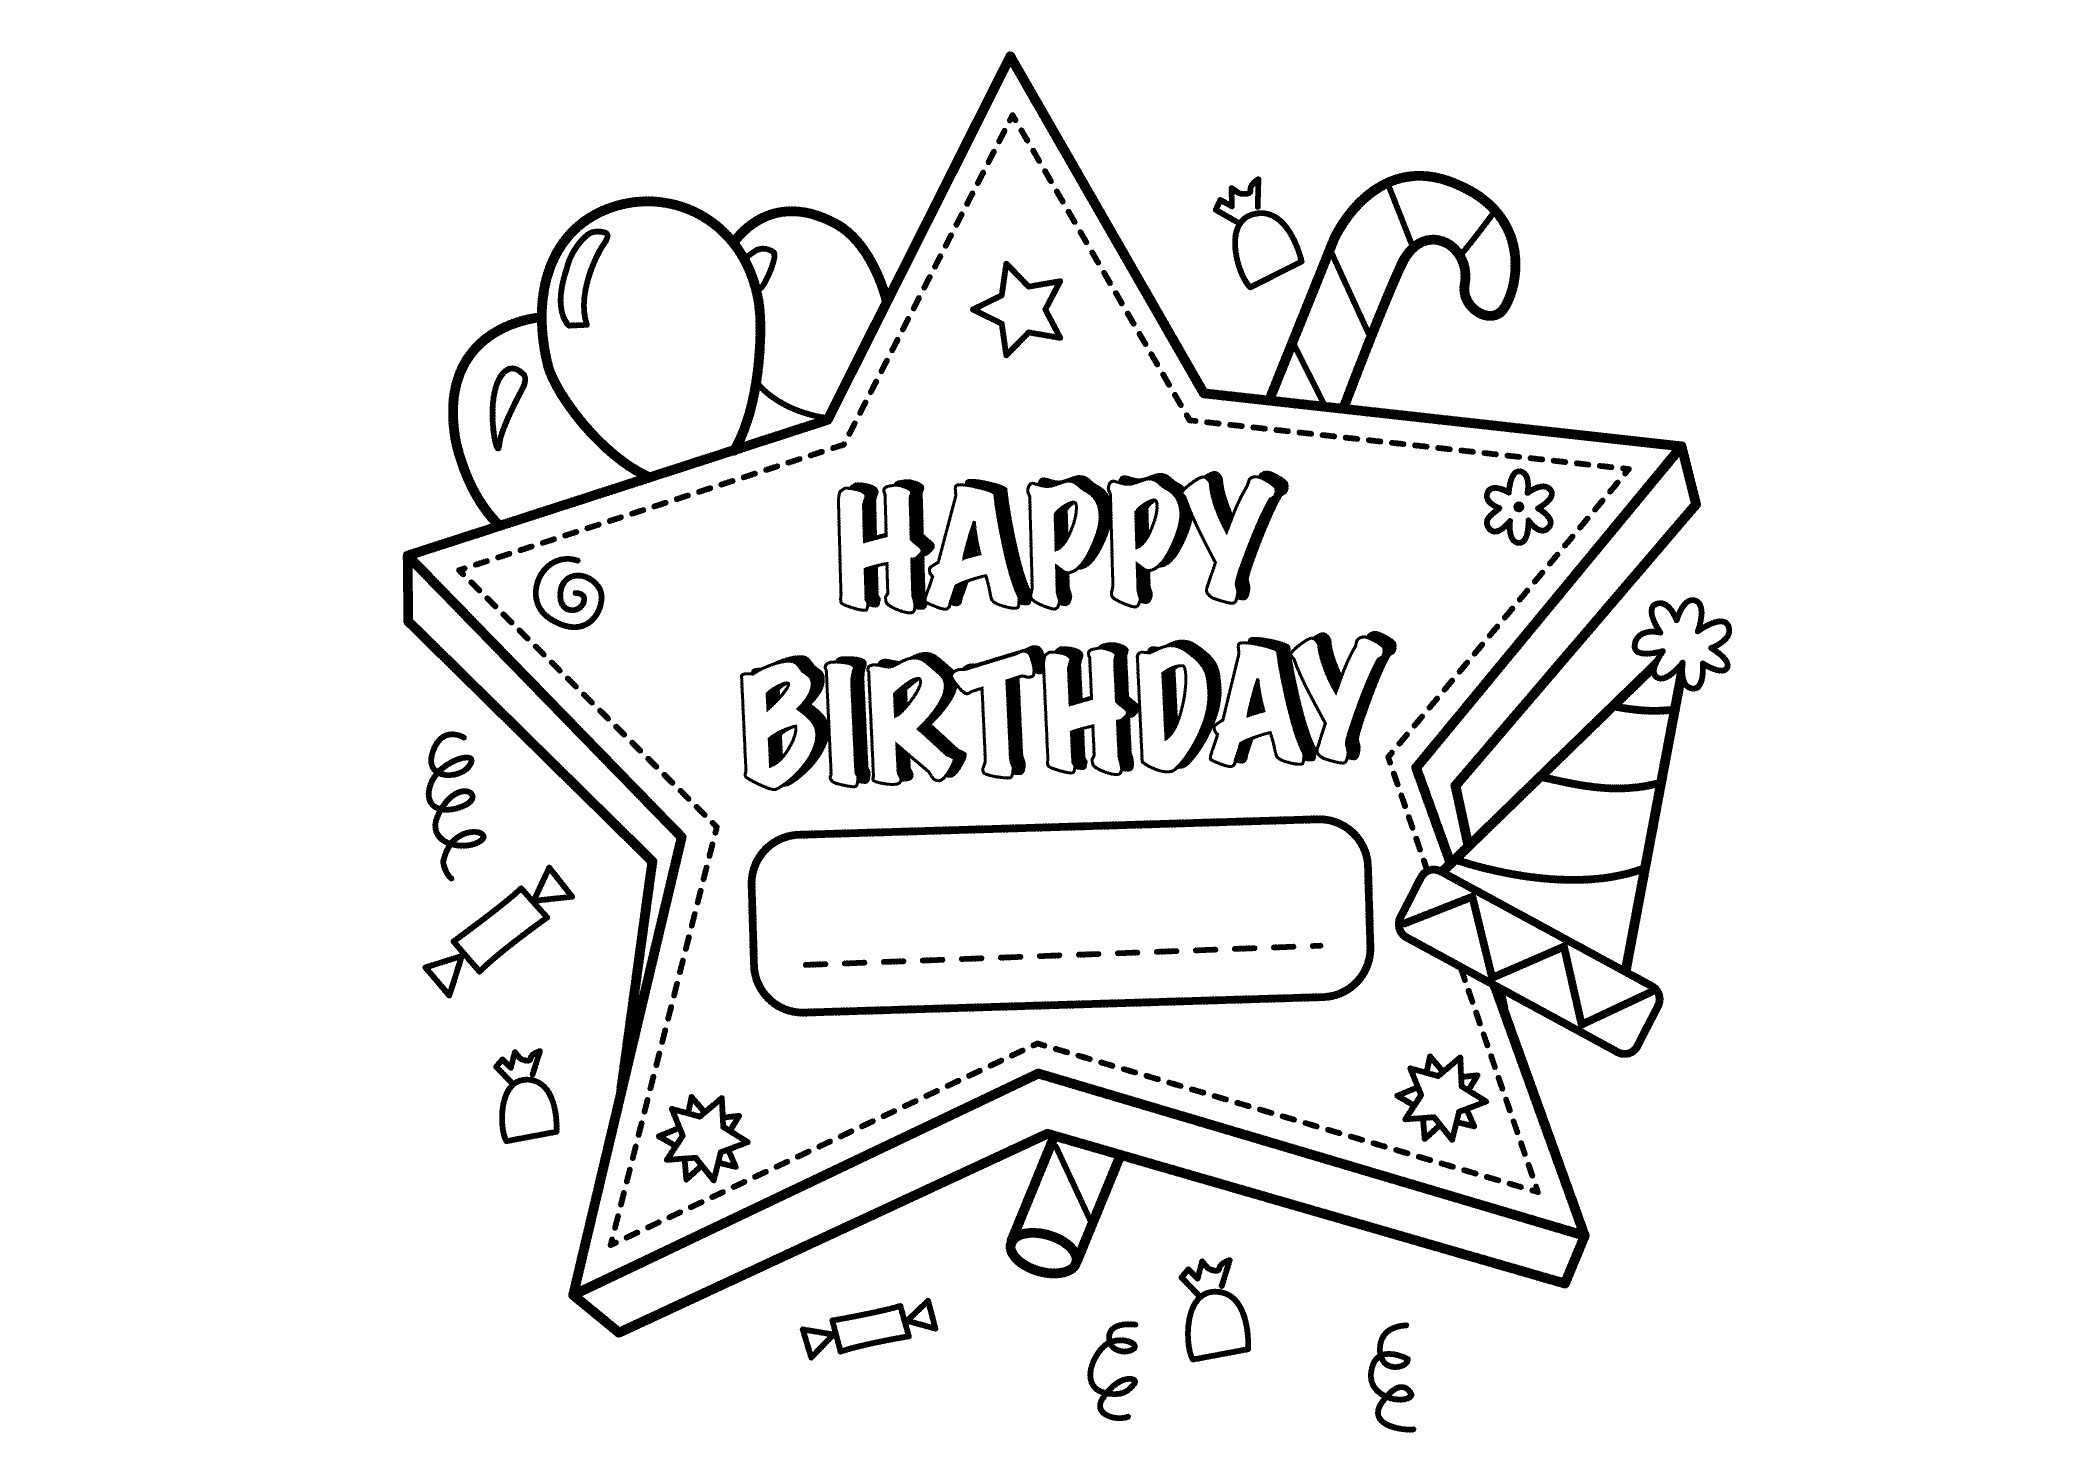 personalized birthday coloring pages ; personalized%2520happy%2520birthday%2520coloring%2520pages%2520;%2520personalized-happy-birthday-coloring-pages-16-d-happy-birthday-coloring-pages-for-boys